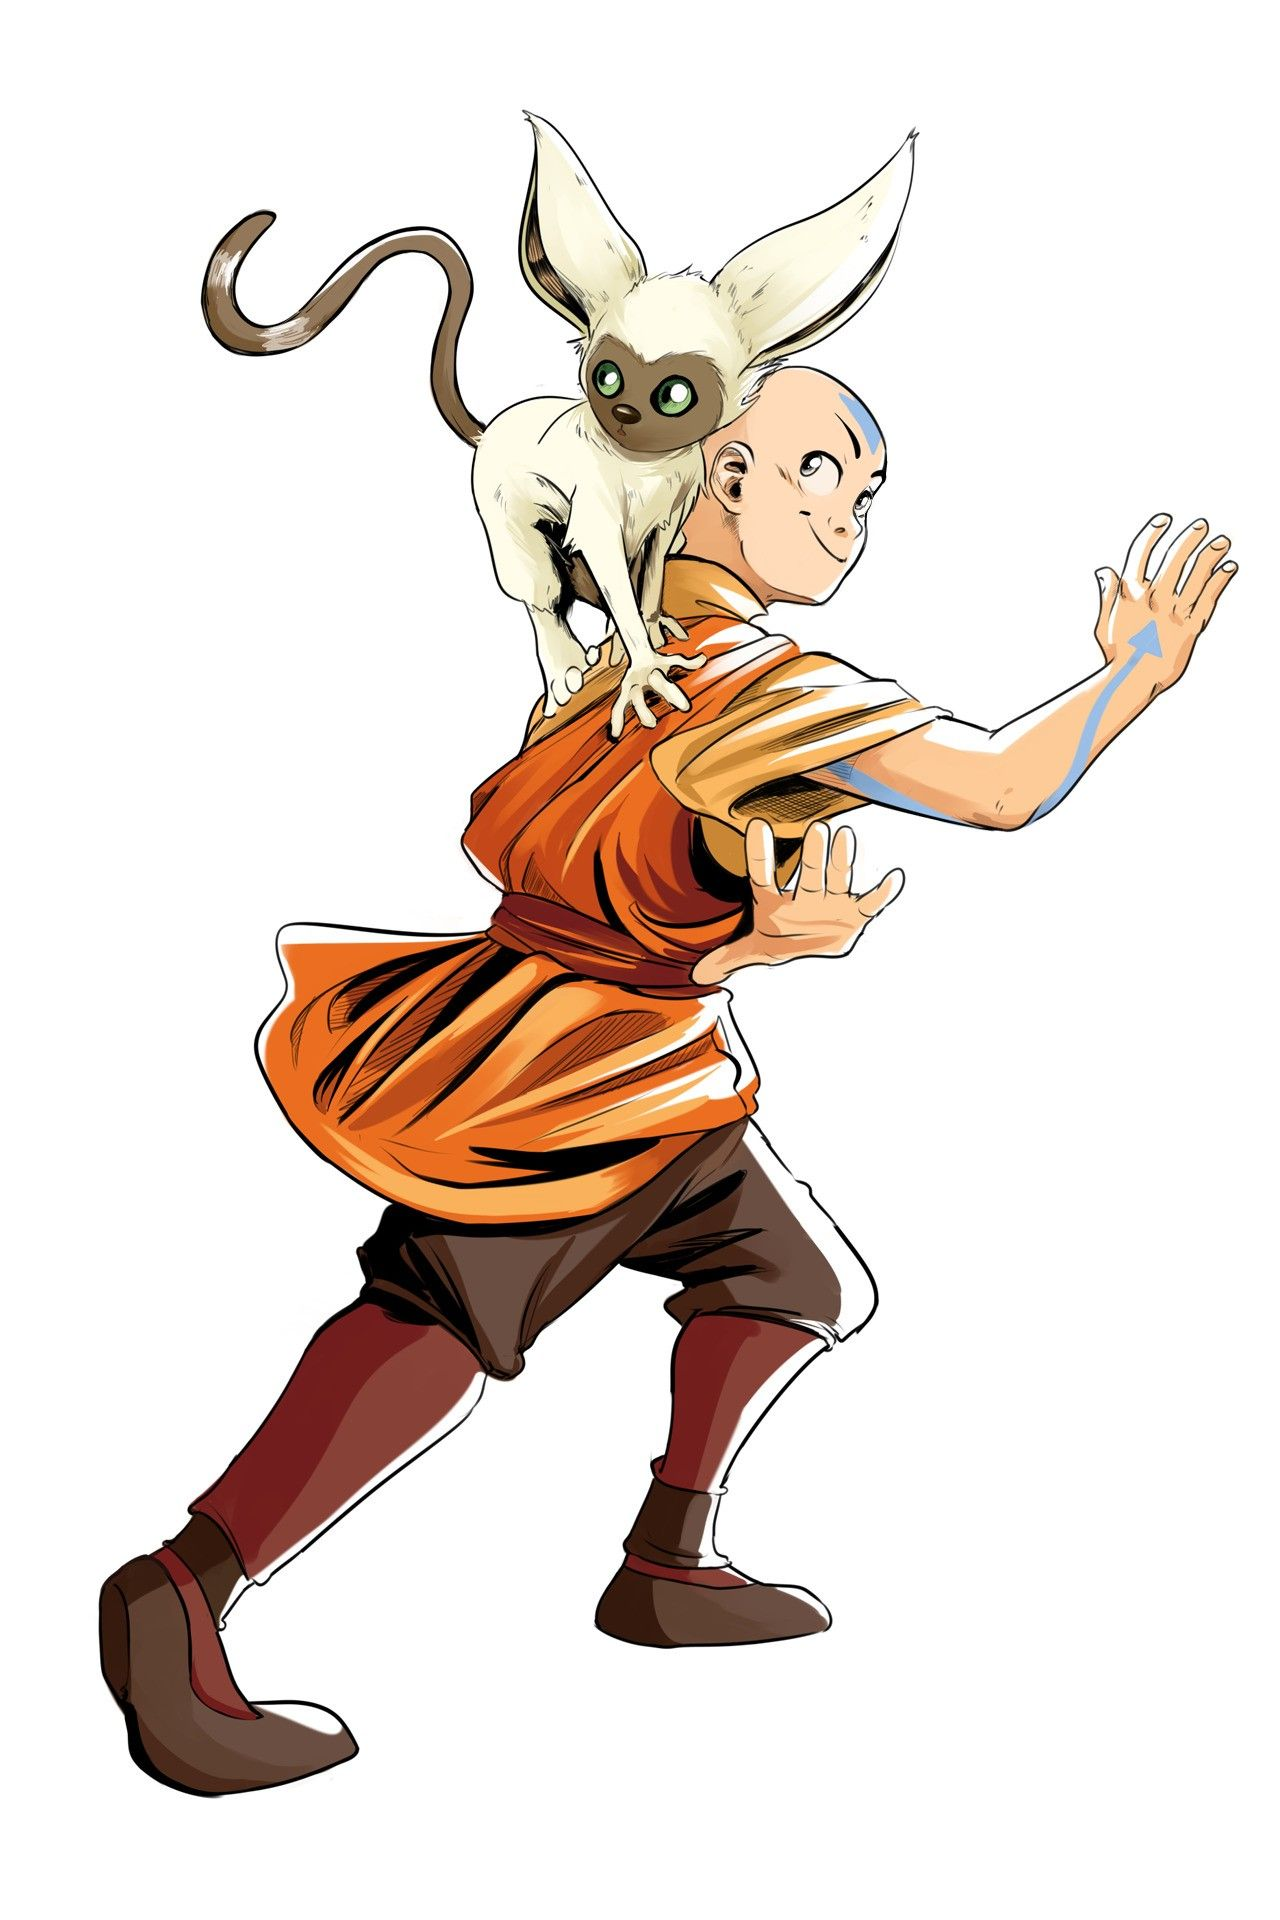 Aang Along With Momo In 2020 Avatar Airbender Avatar The Last Airbender Art Avatar The Last Airbender